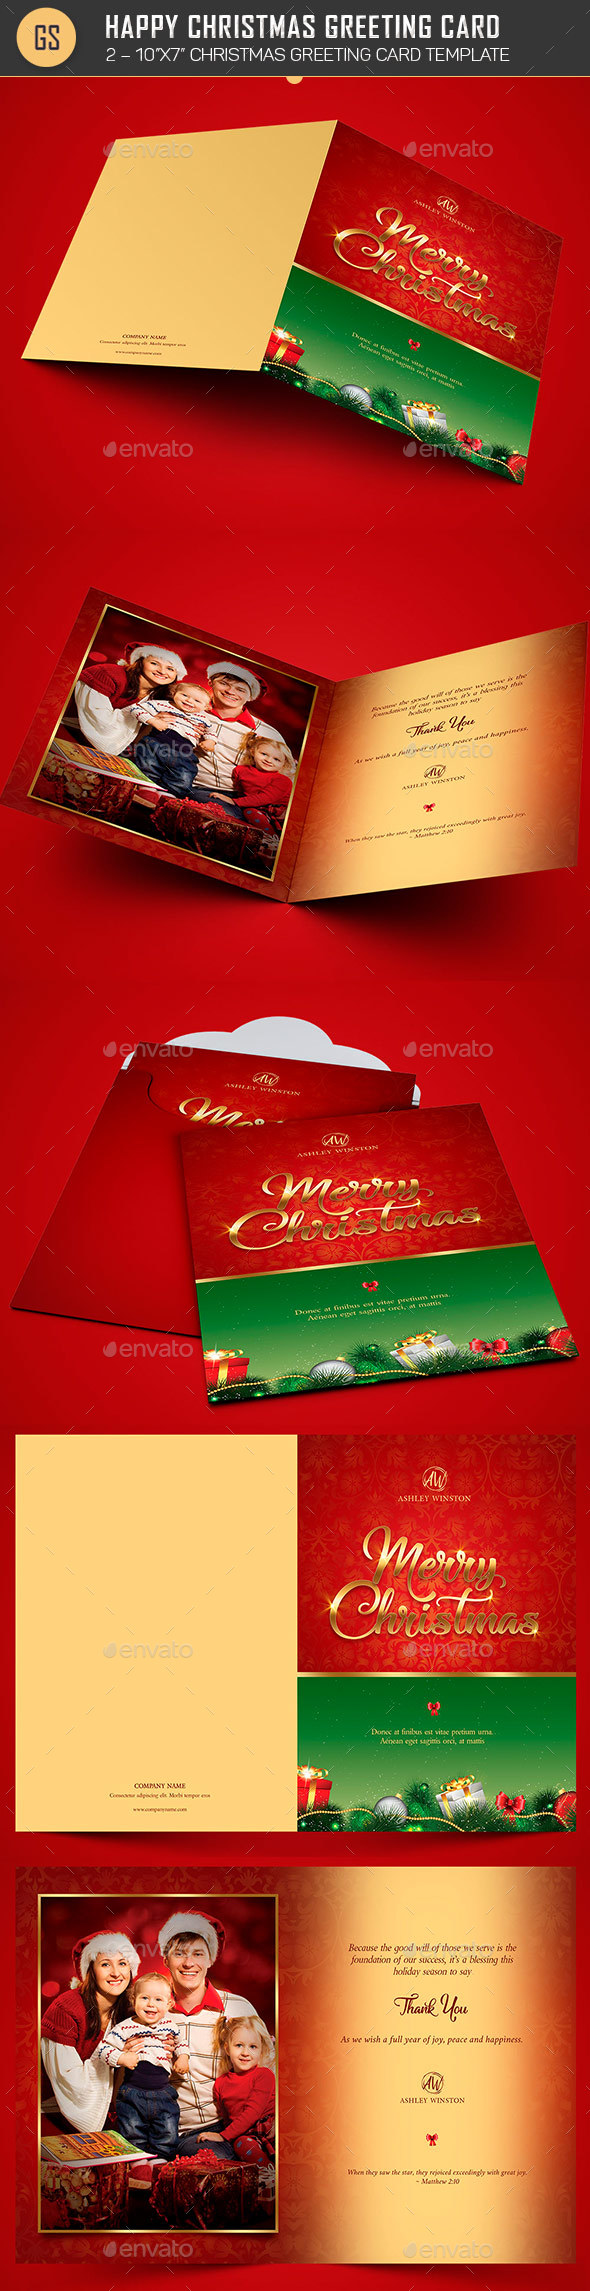 Happy christmas greeting card template by godserv2 graphicriver happy christmas greeting card template holiday greeting cards kristyandbryce Image collections